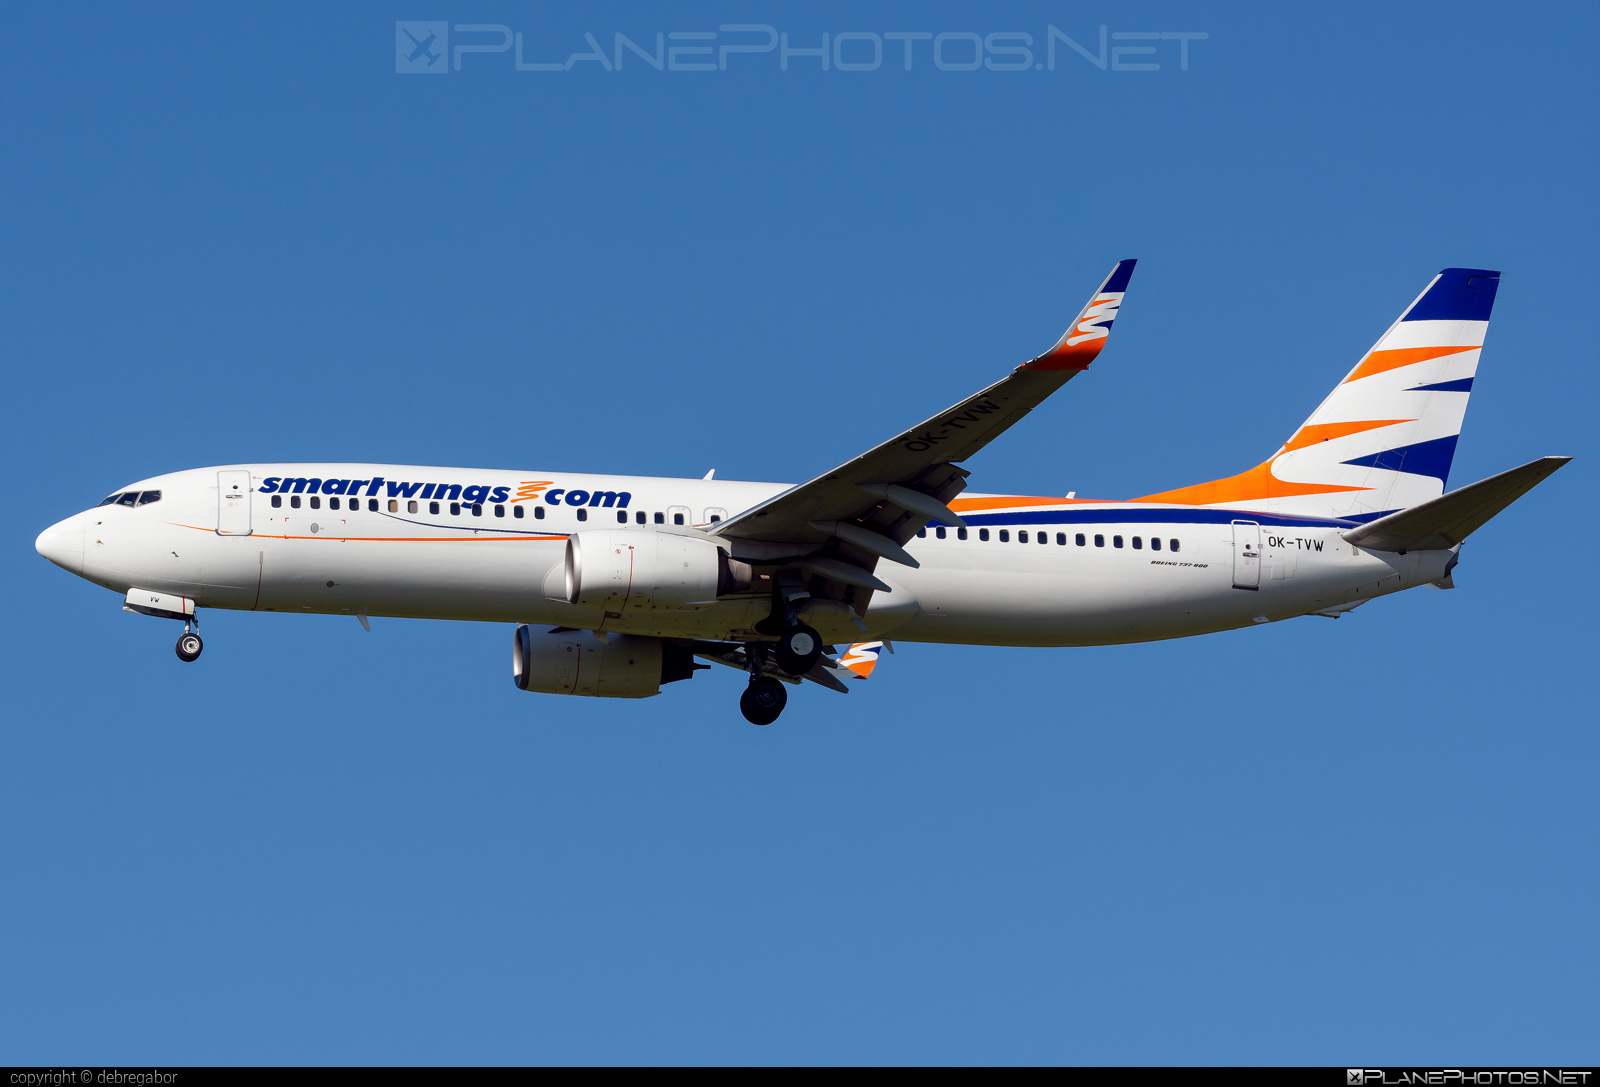 Boeing 737-800 - OK-TVW operated by Smart Wings #b737 #b737nextgen #b737ng #boeing #boeing737 #smartwings